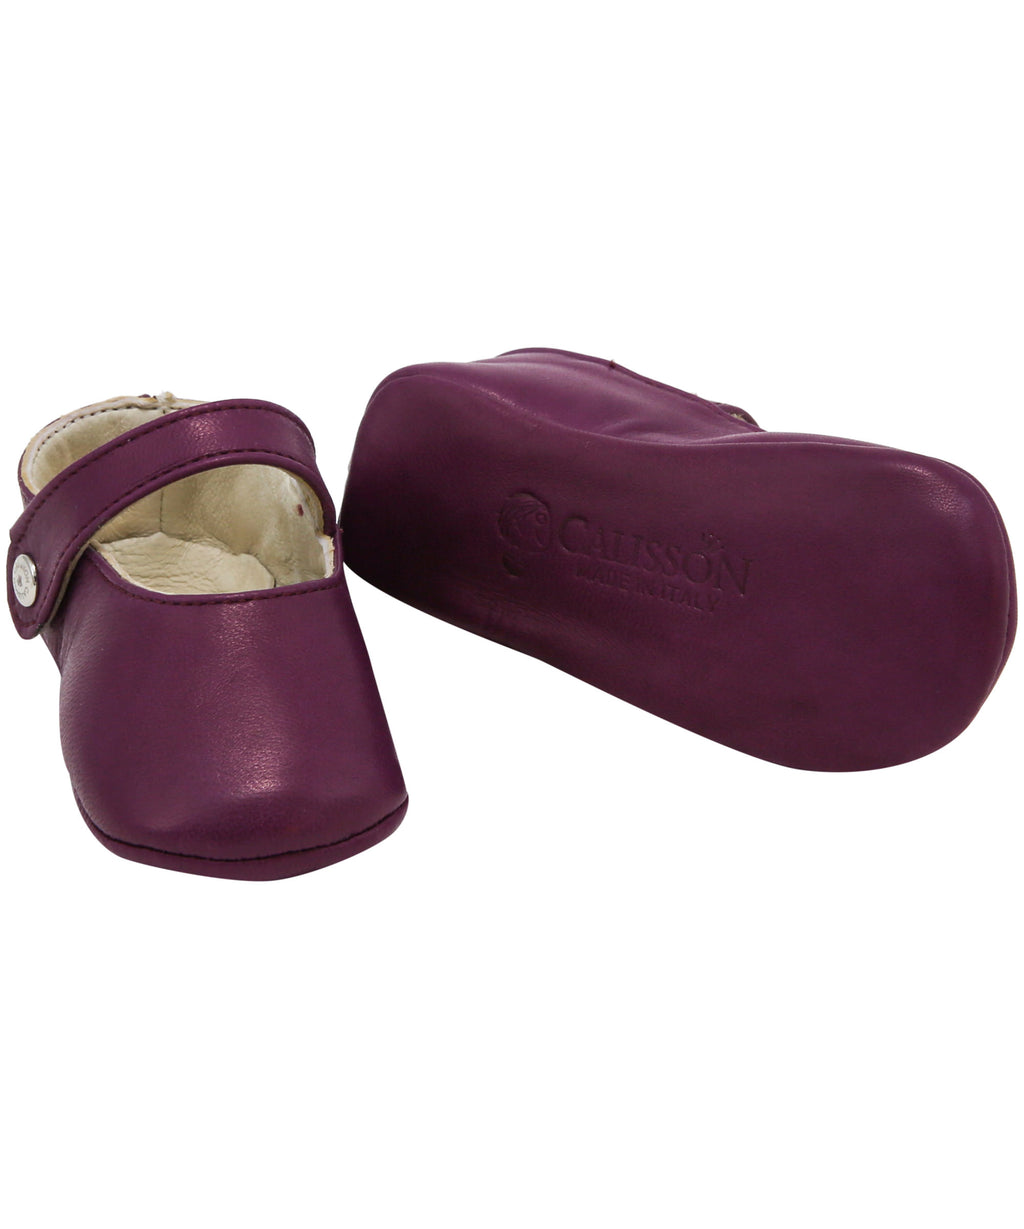 Mauve Matilde Leather Shoes